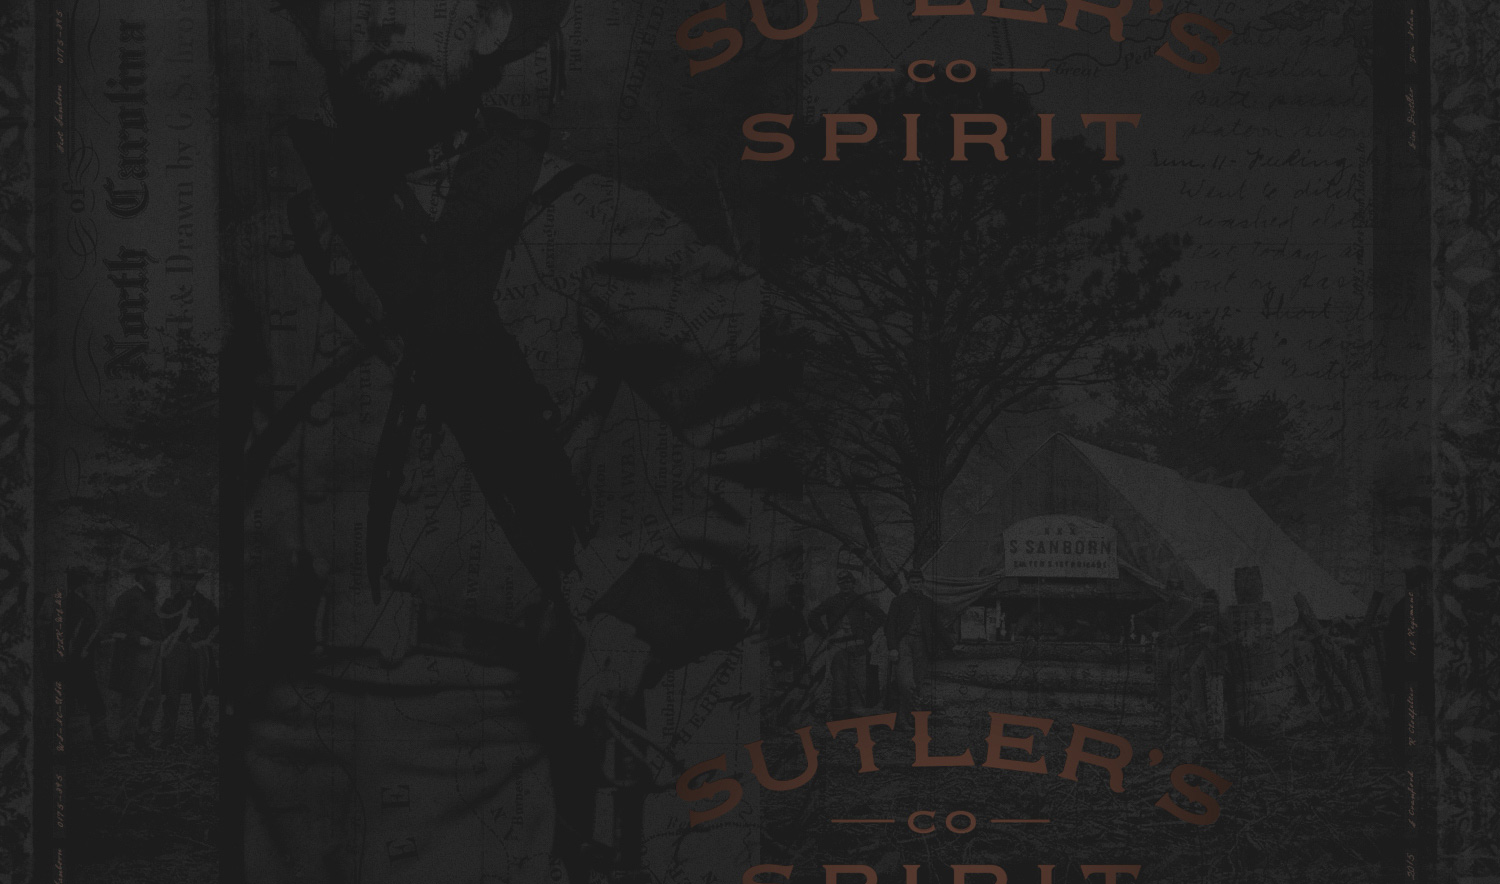 _08 / DCC × SUTLER'S SPIRIT CO.